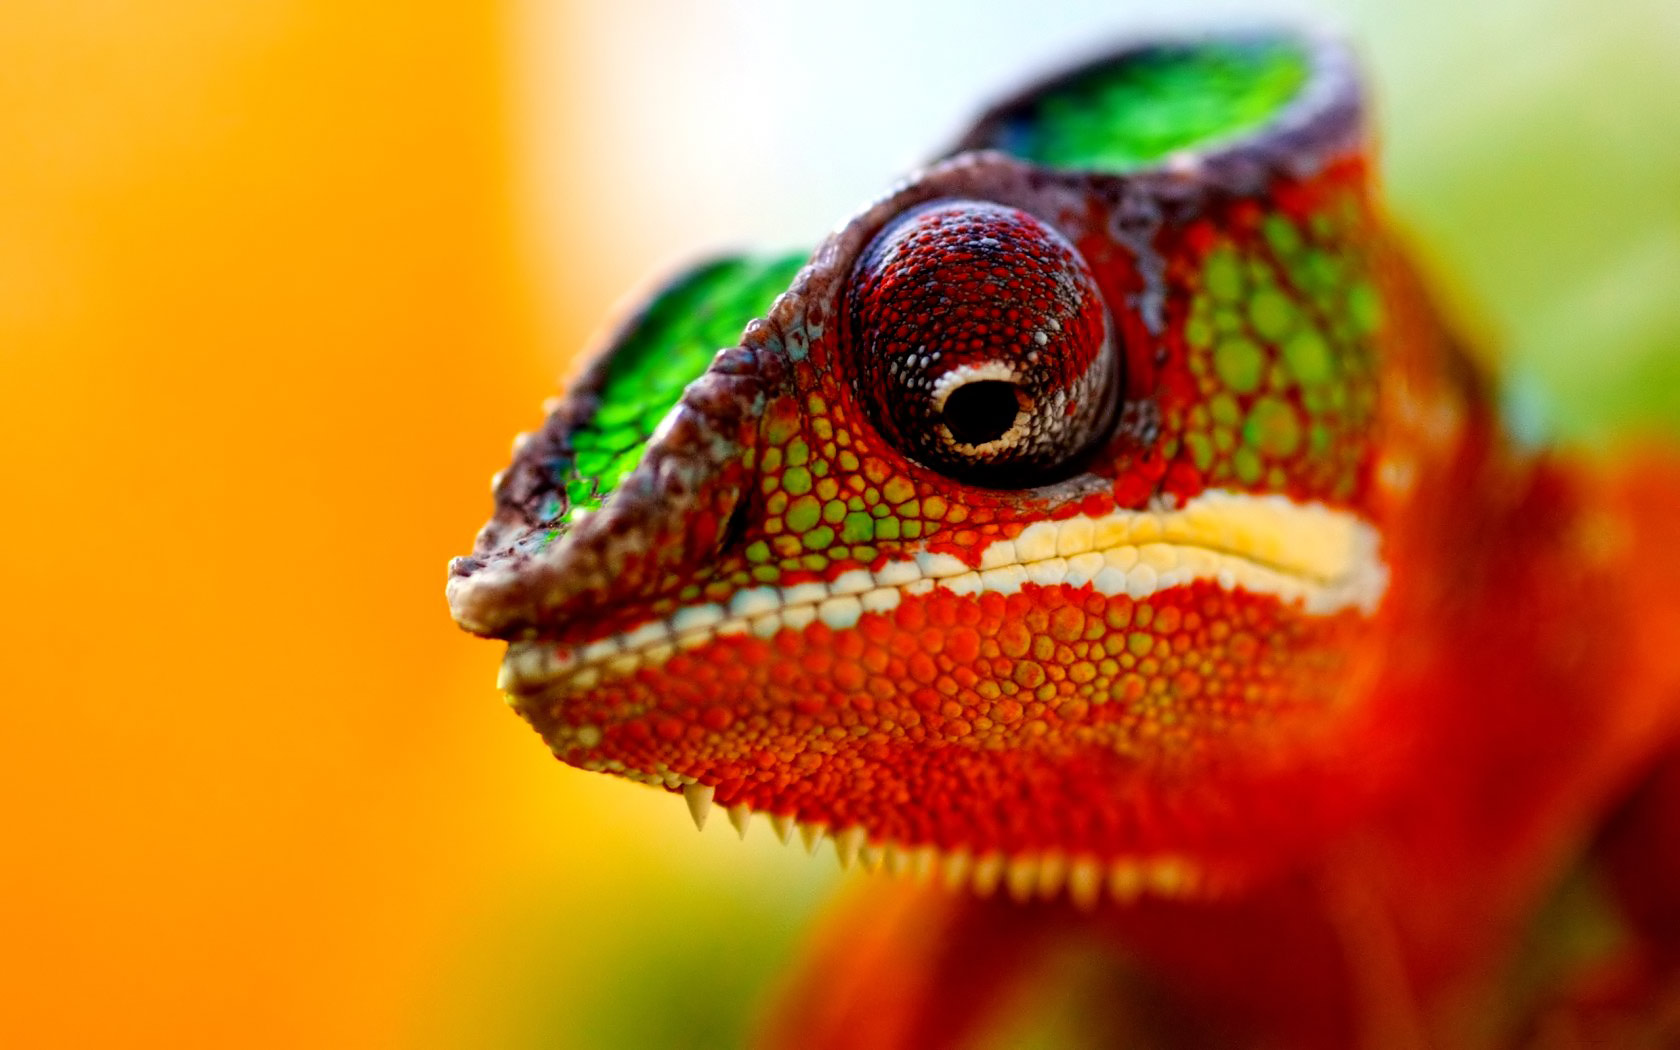 original-dream-i-want-to-have-a-chameleon-or-a-lively-lizard-time-2012-07-08_13-24-34-userid-186.jpg